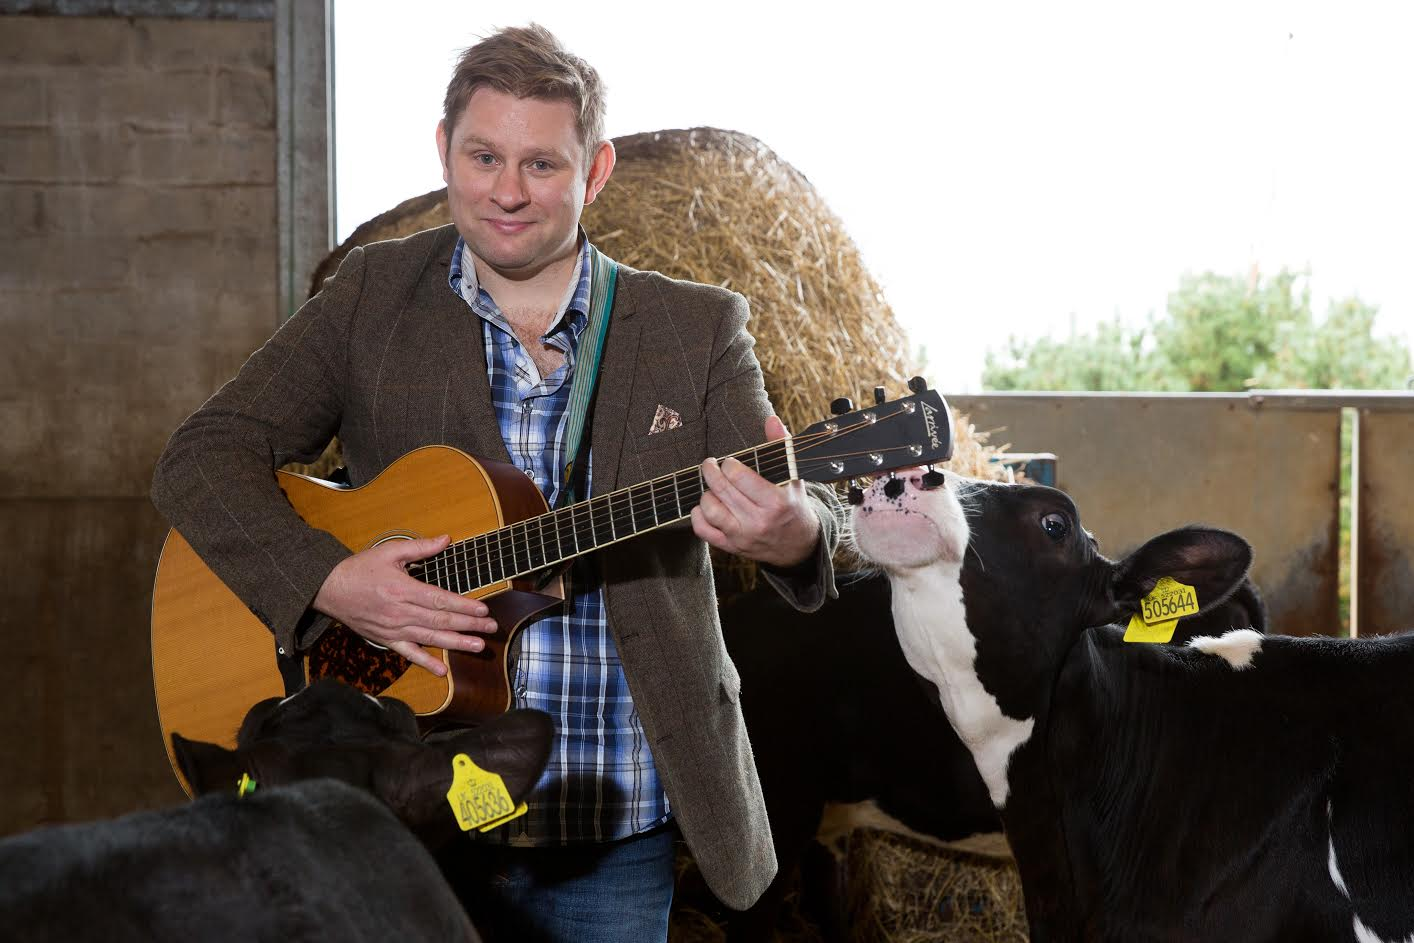 'Cows curious about country choons': Test shows cows interested in music